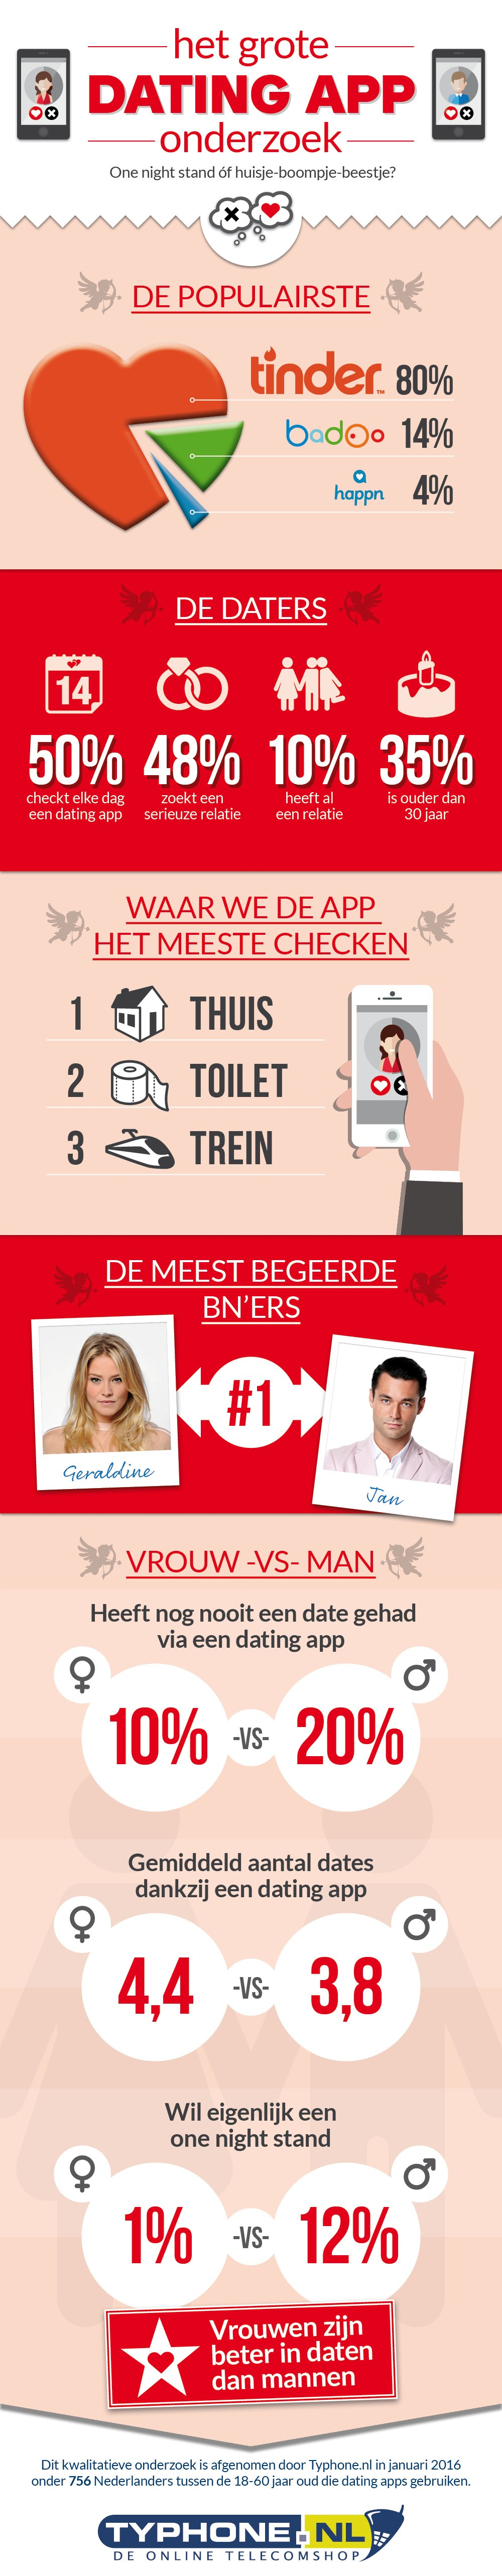 Typhone Infographic - Nationale Dating App Onderzoek